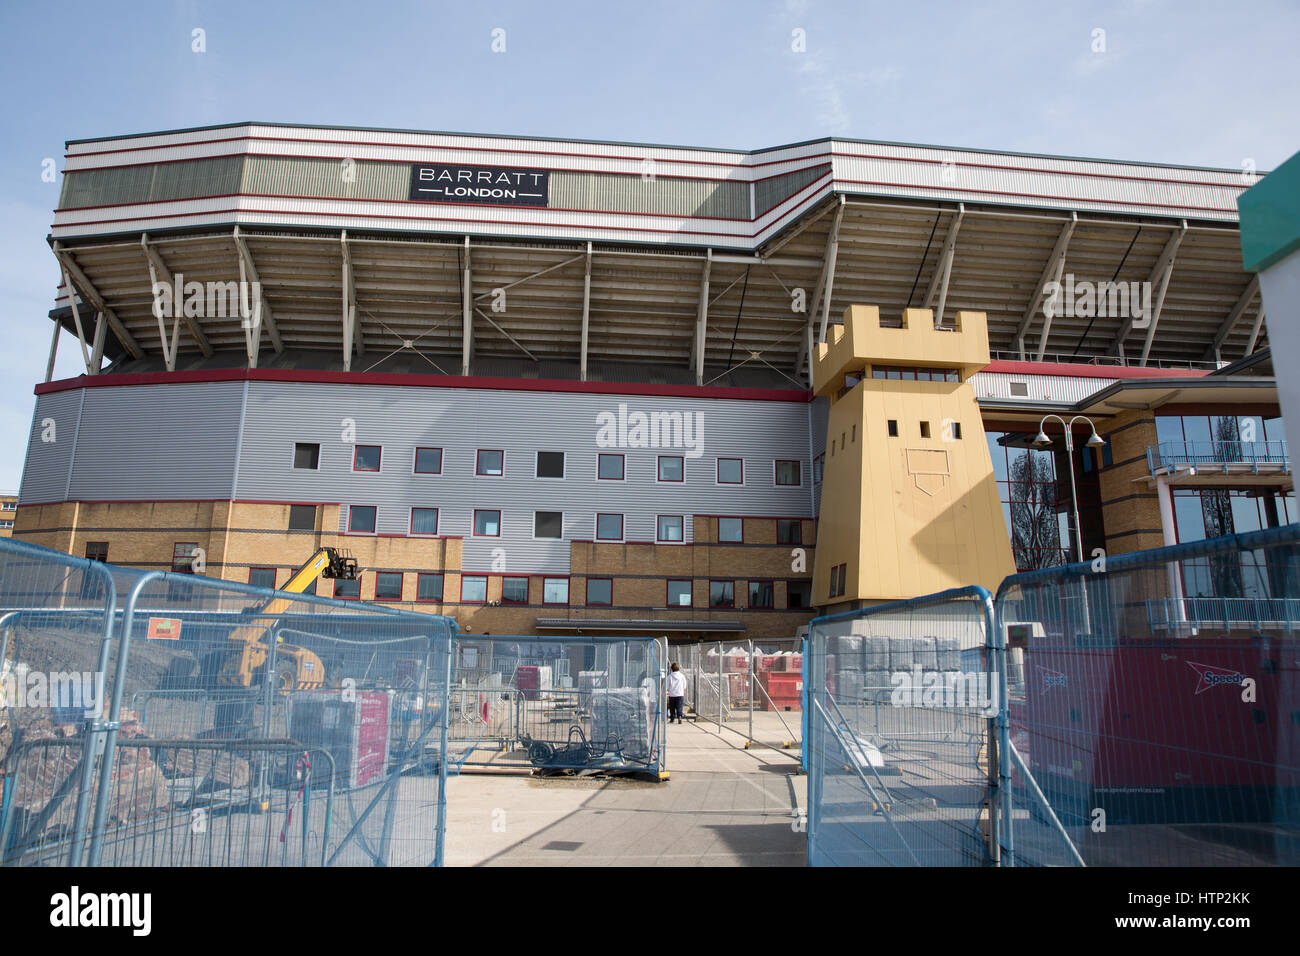 London, UK. 13th March, 2017. Demolition continues at the Boleyn Ground, West Ham United's former stadium in - Stock Image